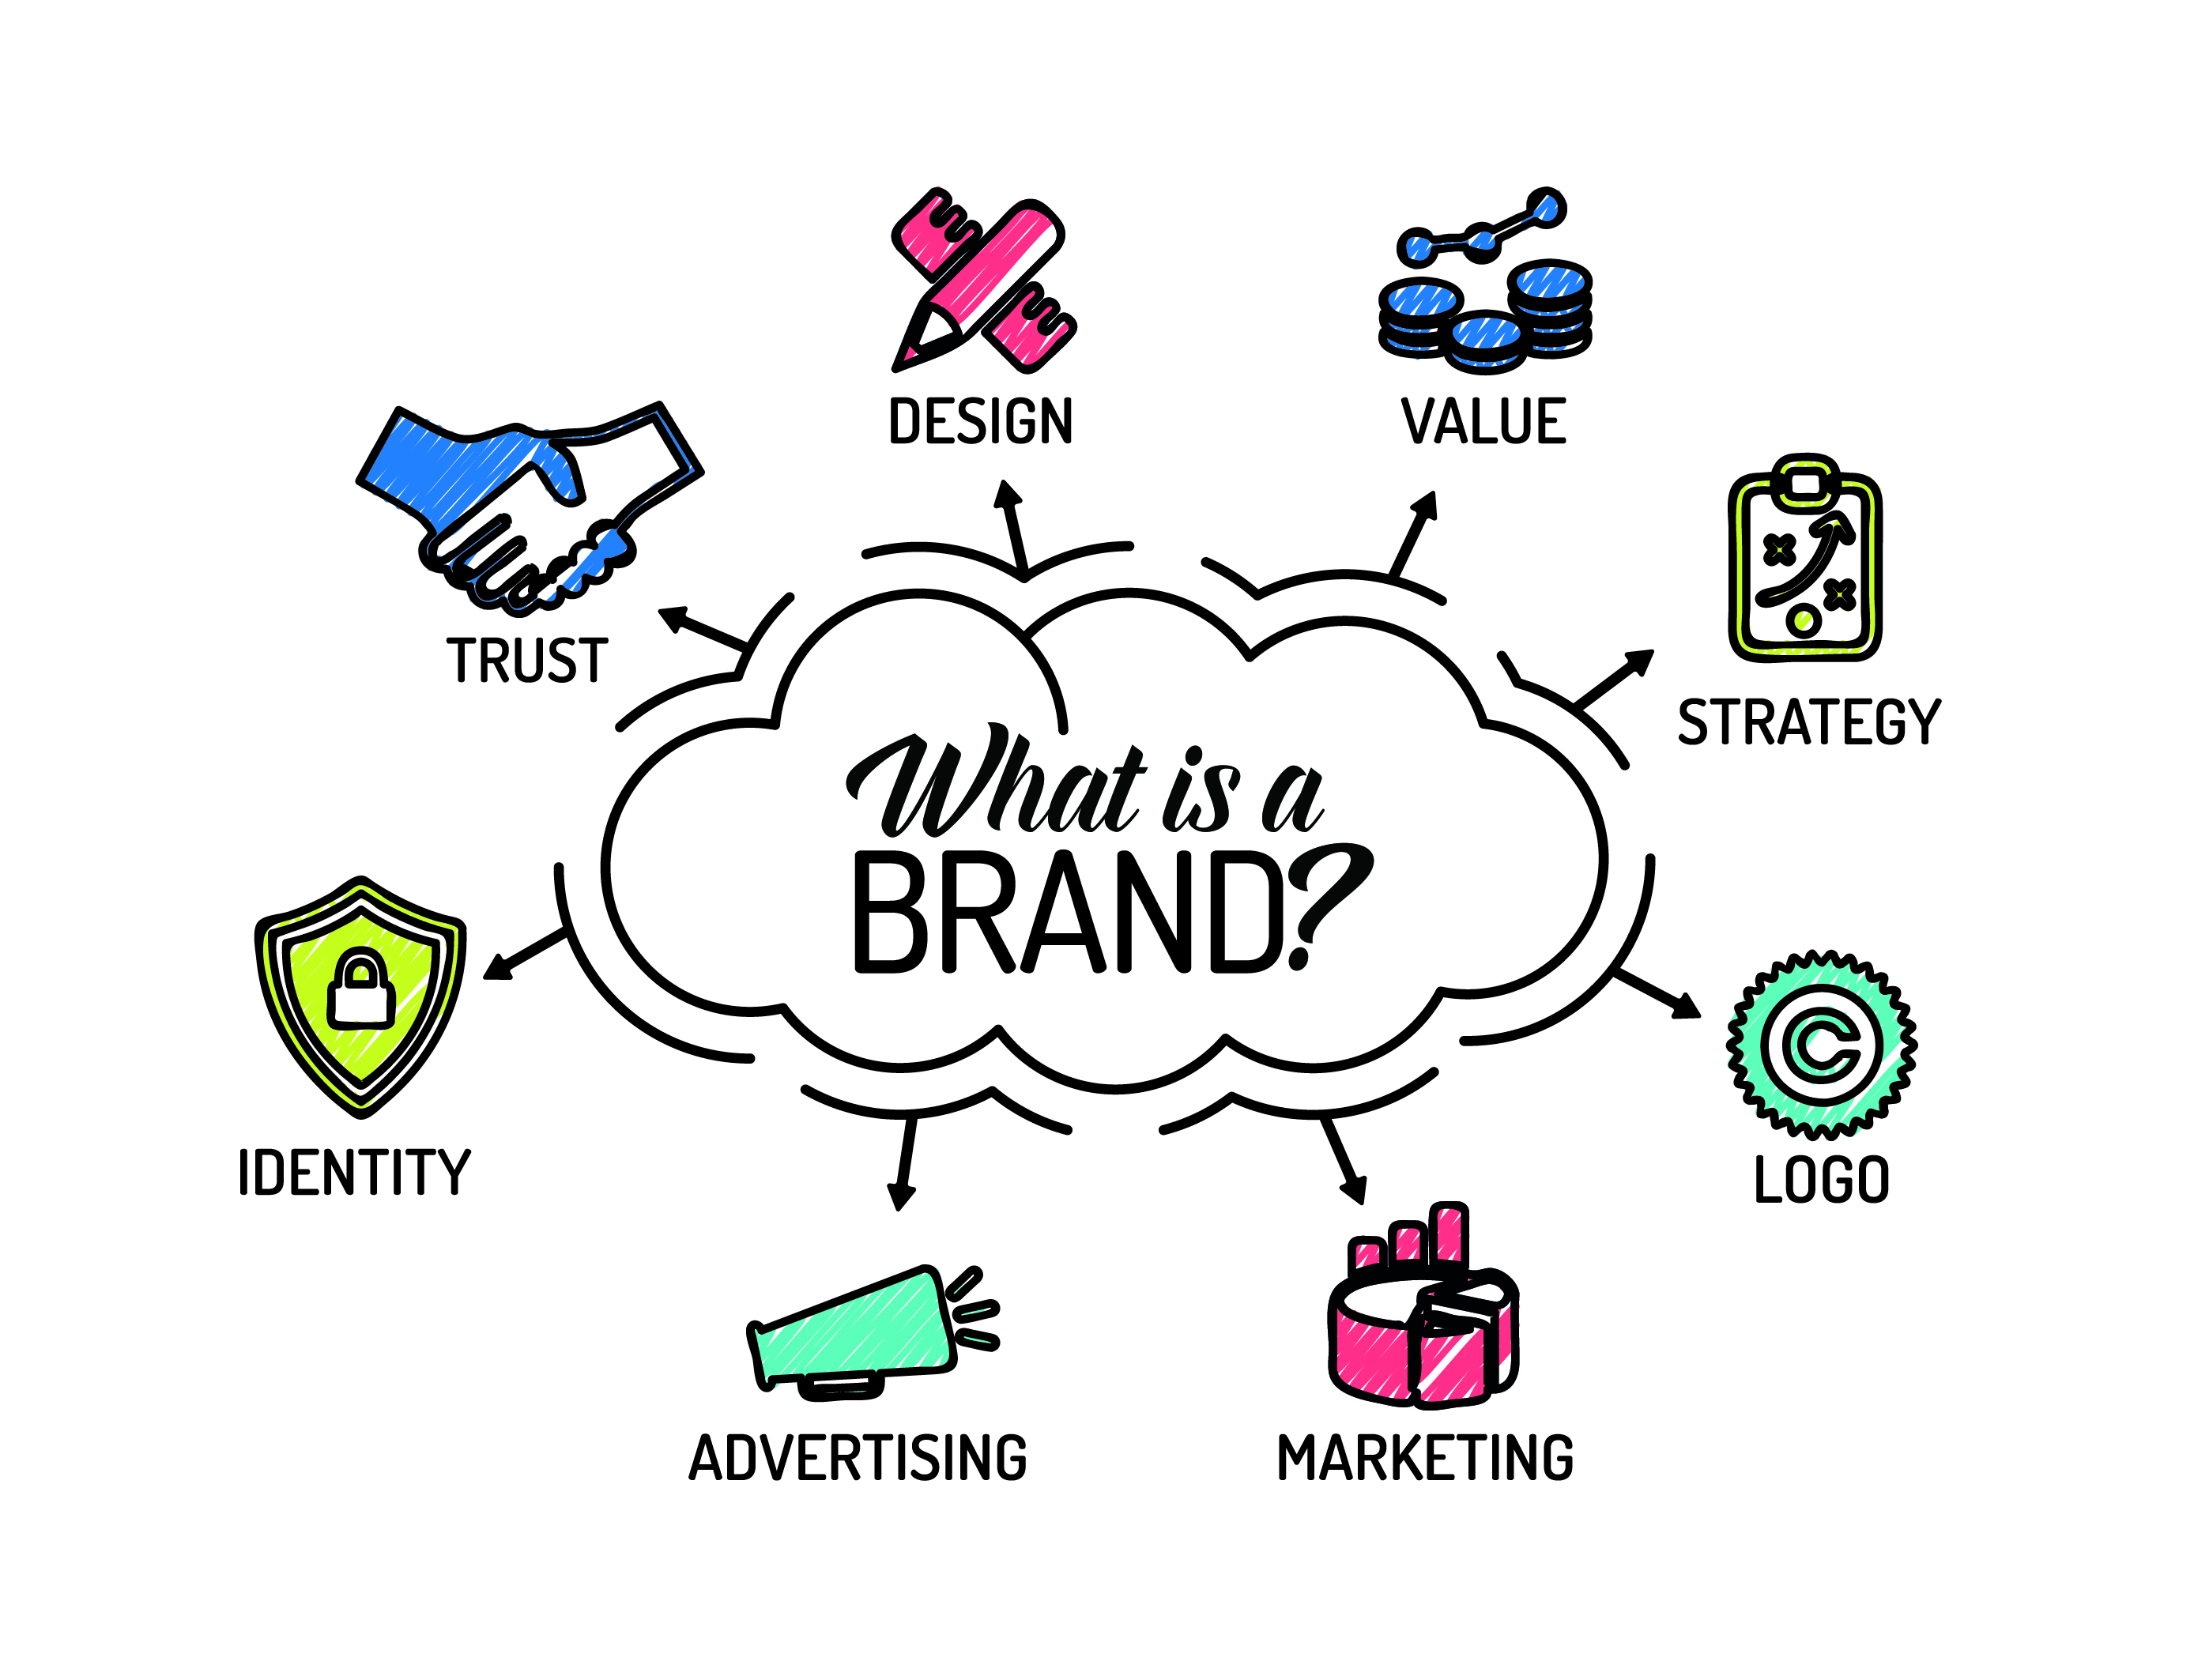 Why Brand Building is a Critical Exercise for SaaS